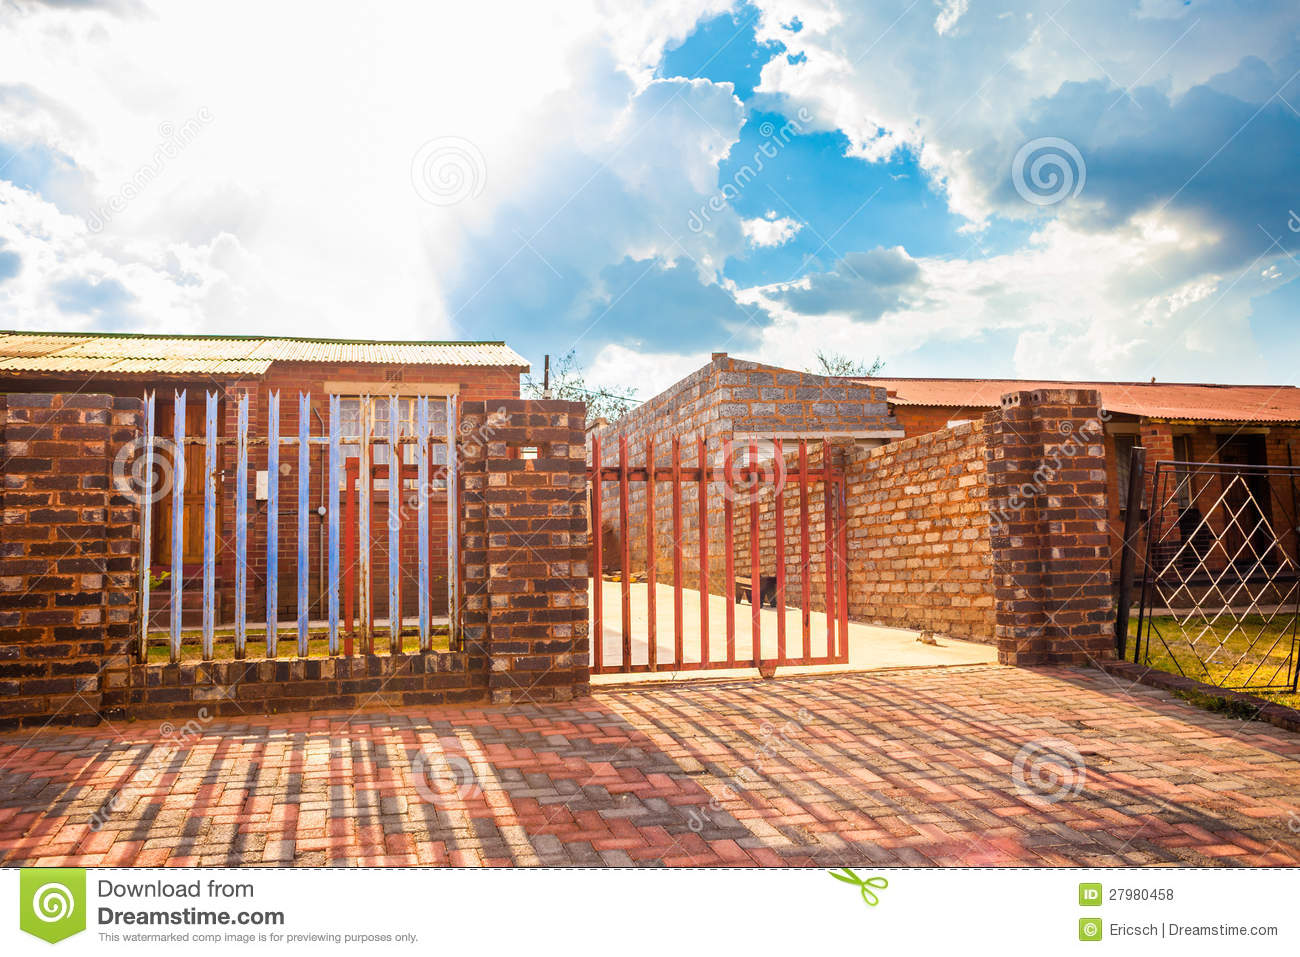 House gate johannesburgs famous soweto township south africa